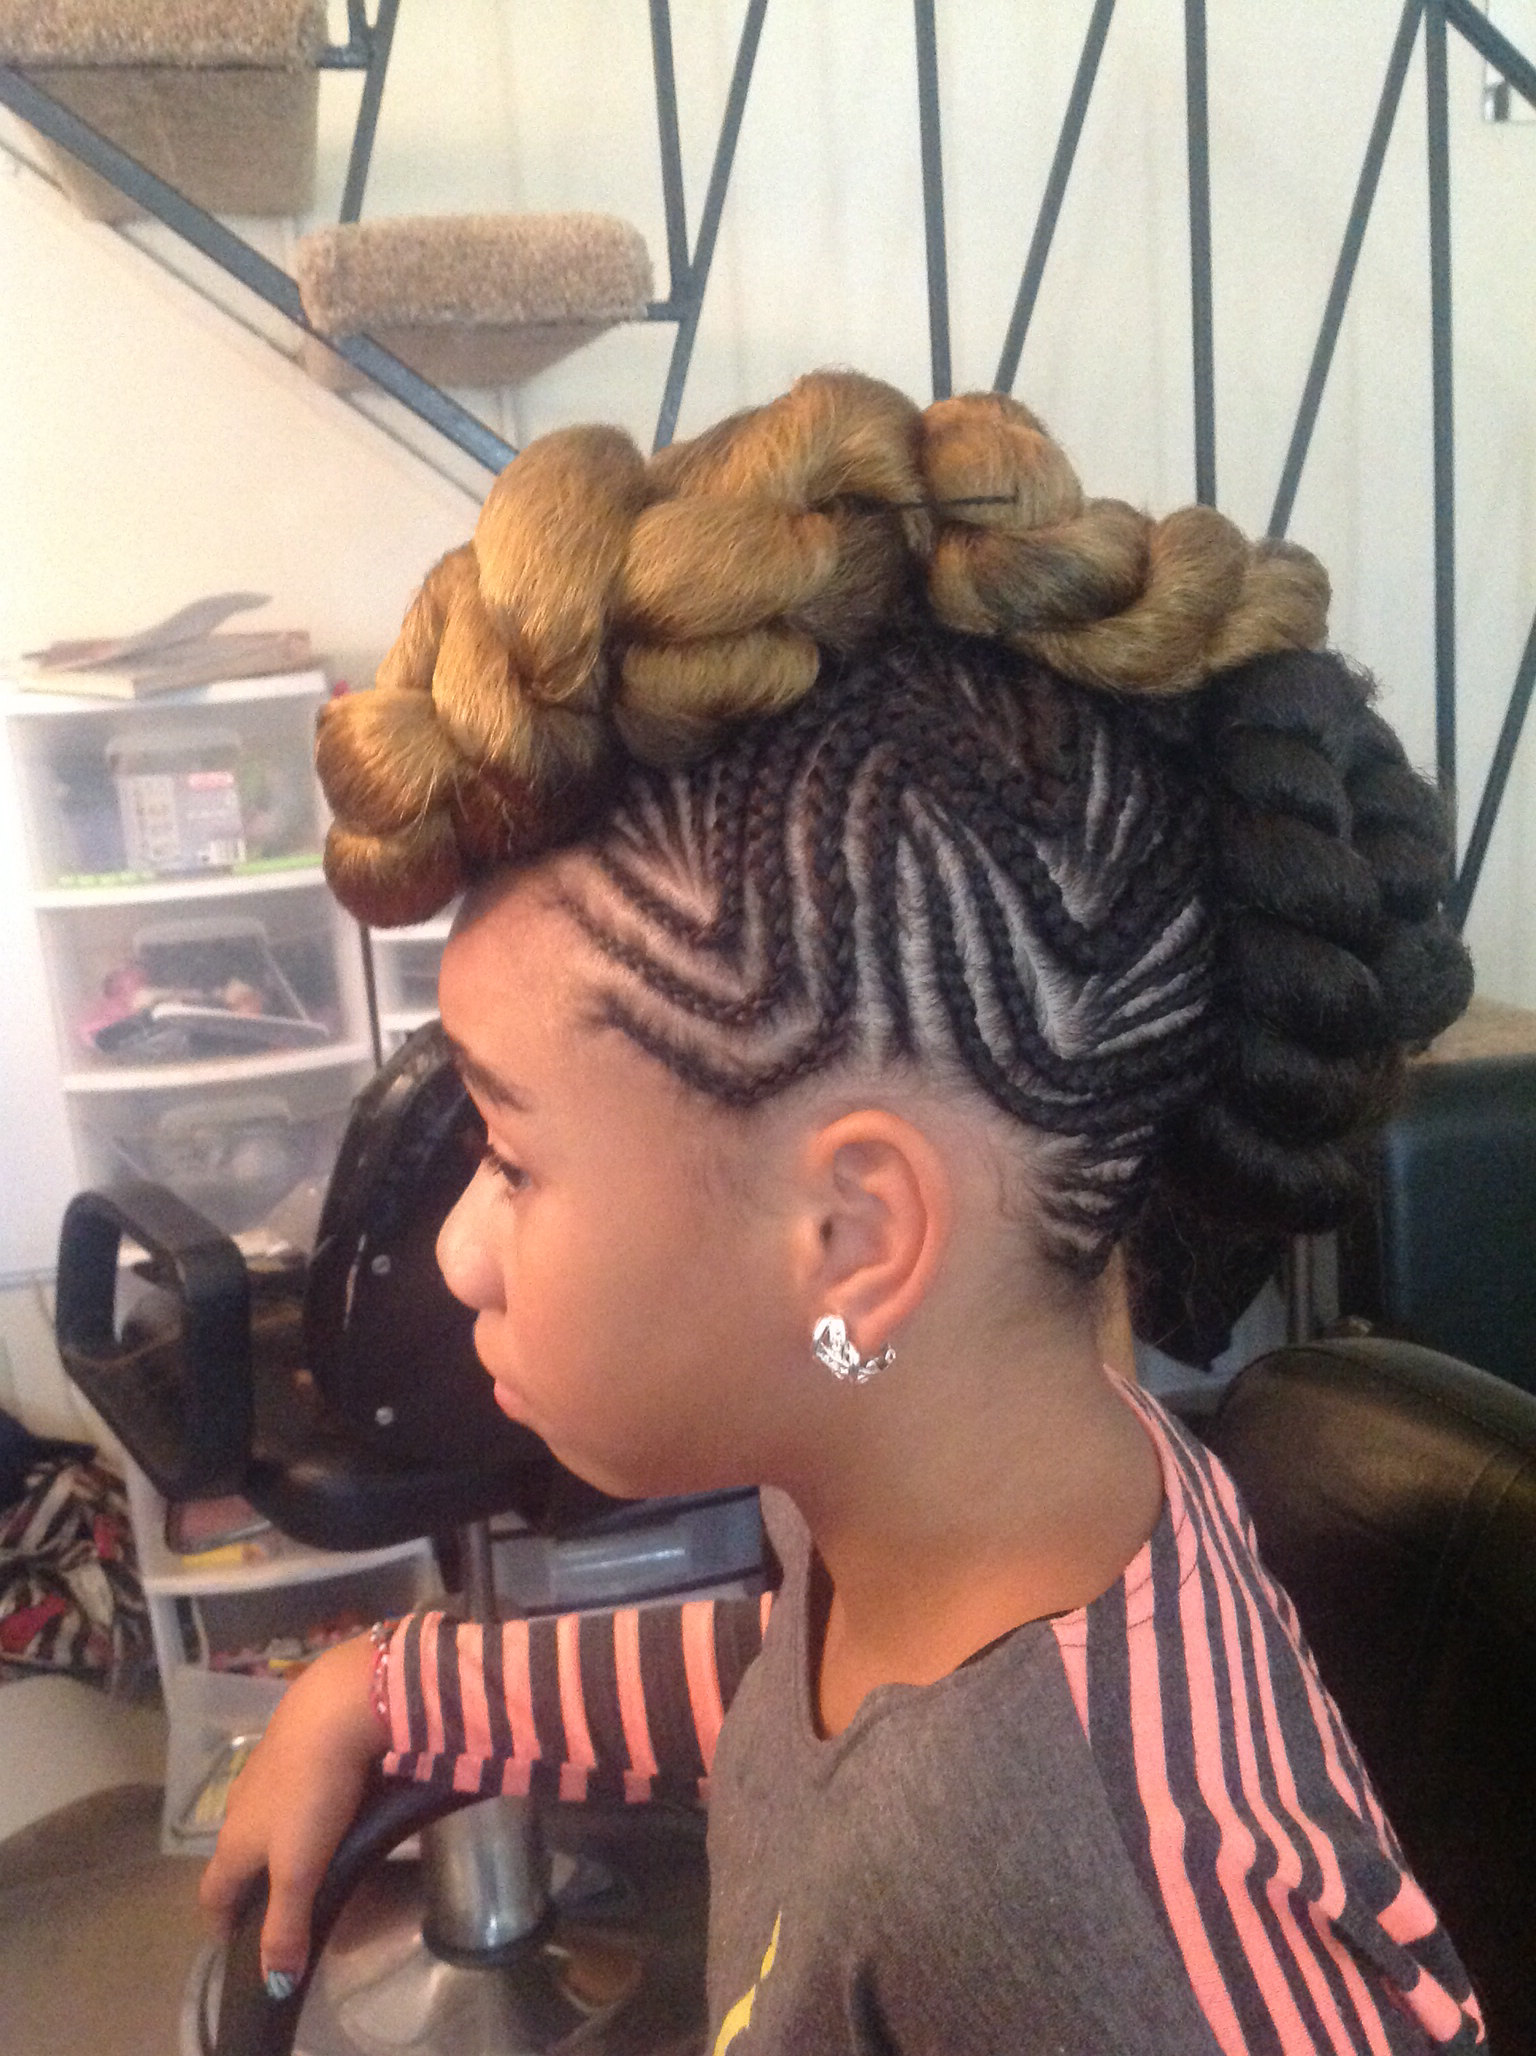 15 Foremost Braided Mohawk Hairstyles – Mohawk With Braids For 2020 Side Braided Mohawk Hairstyles With Curls (View 14 of 20)